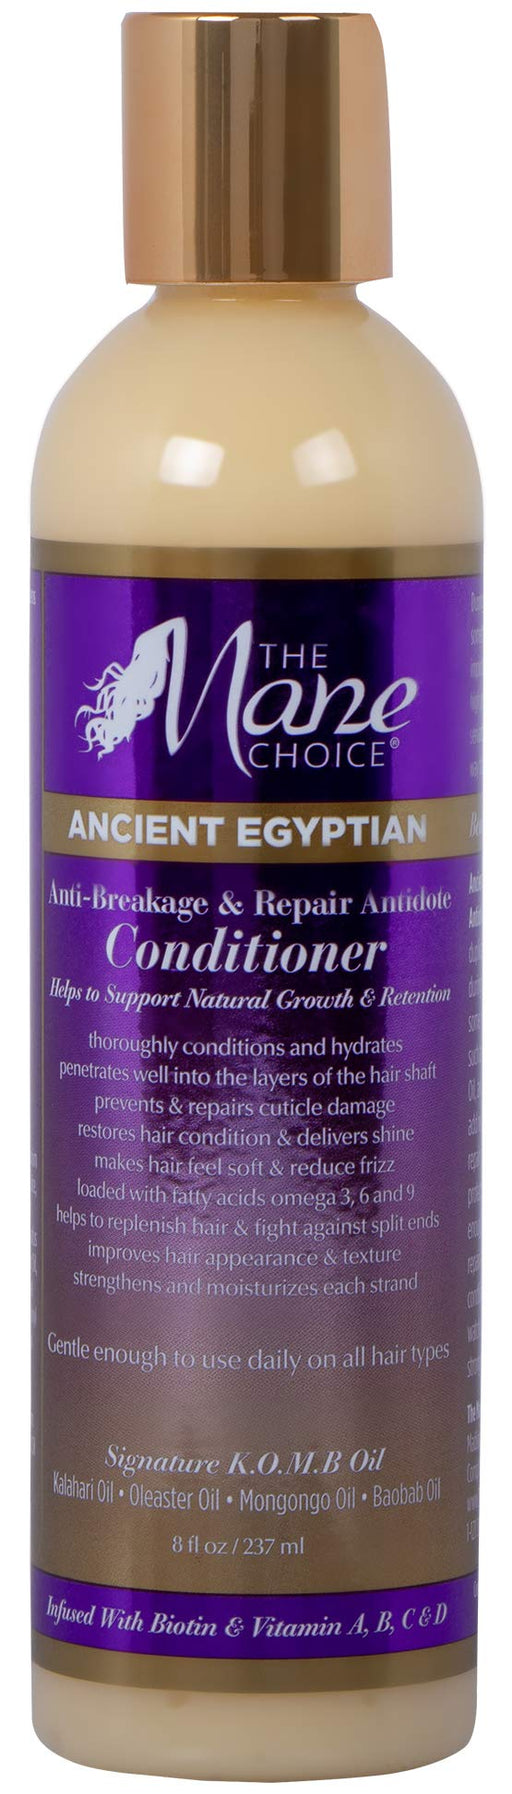 THE MANE CHOICE Ancient Egyptian Anti-Breakage & Repair Antidote Conditioner - Hydrates and Strengthens Your Hair While Promoting Growth and Retention (8 Ounces / 236 Milliliters)